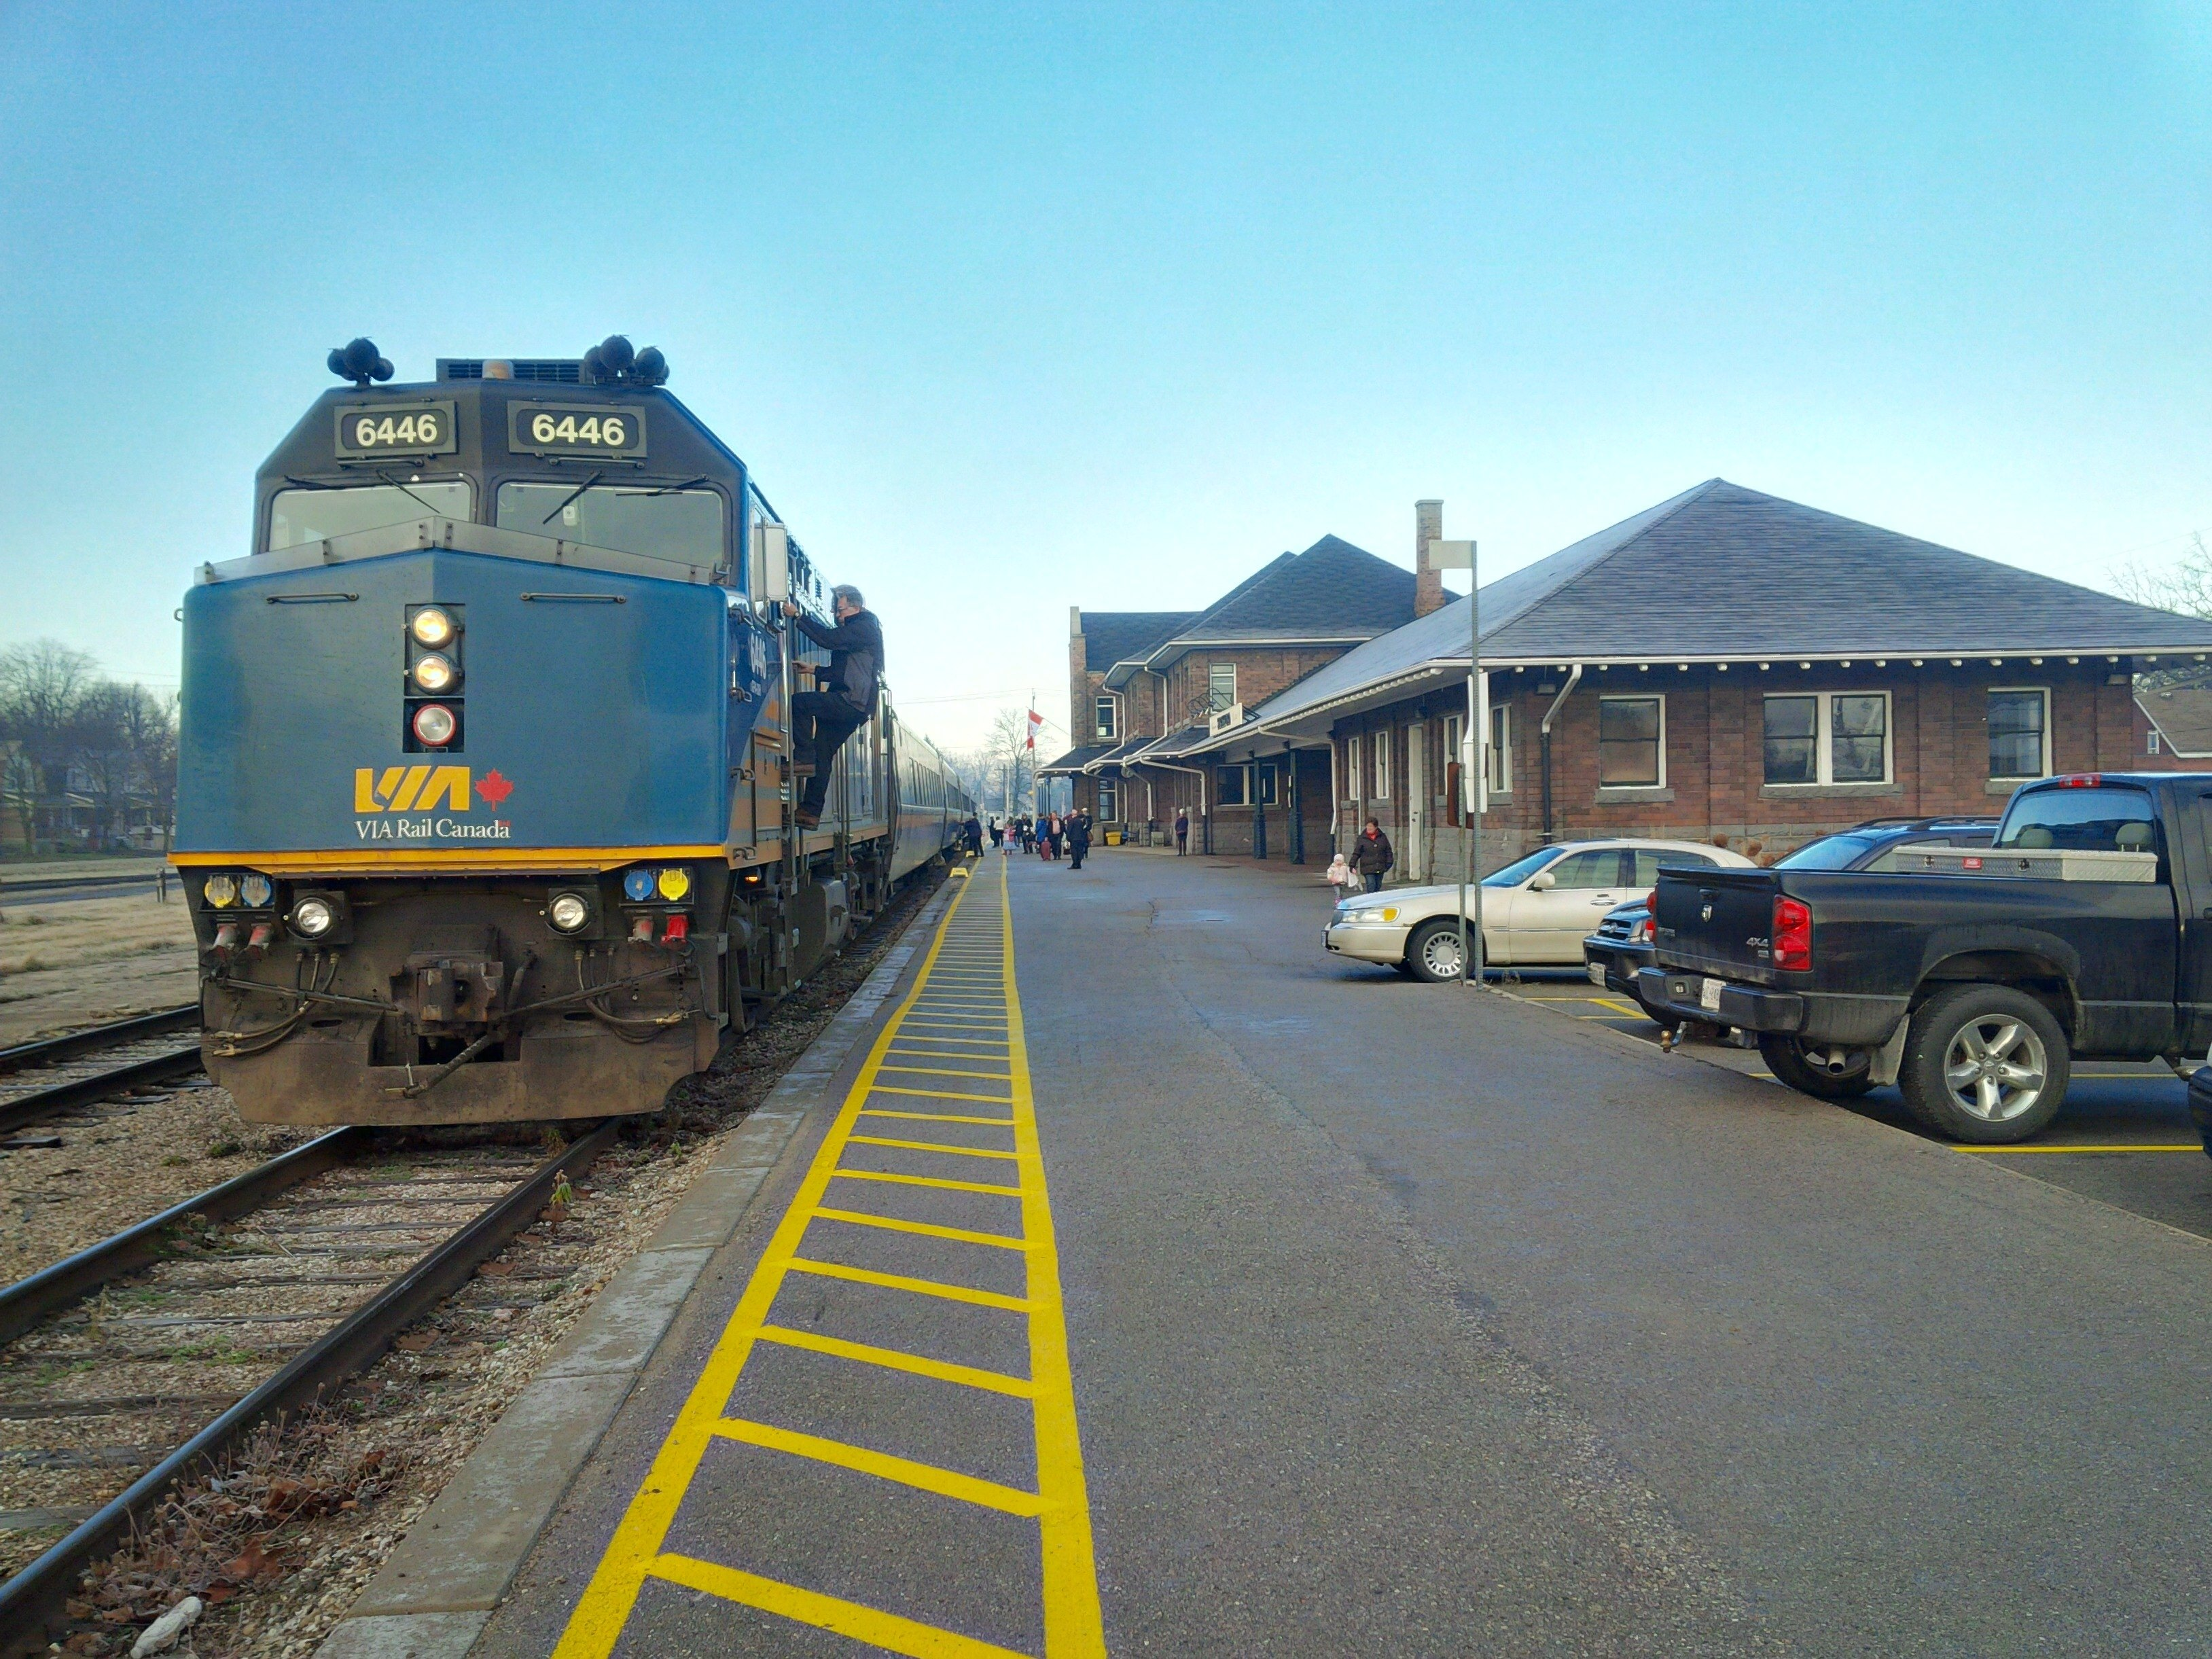 VIA Rail improves connections to Kitchener, Stratford, and St. Marys